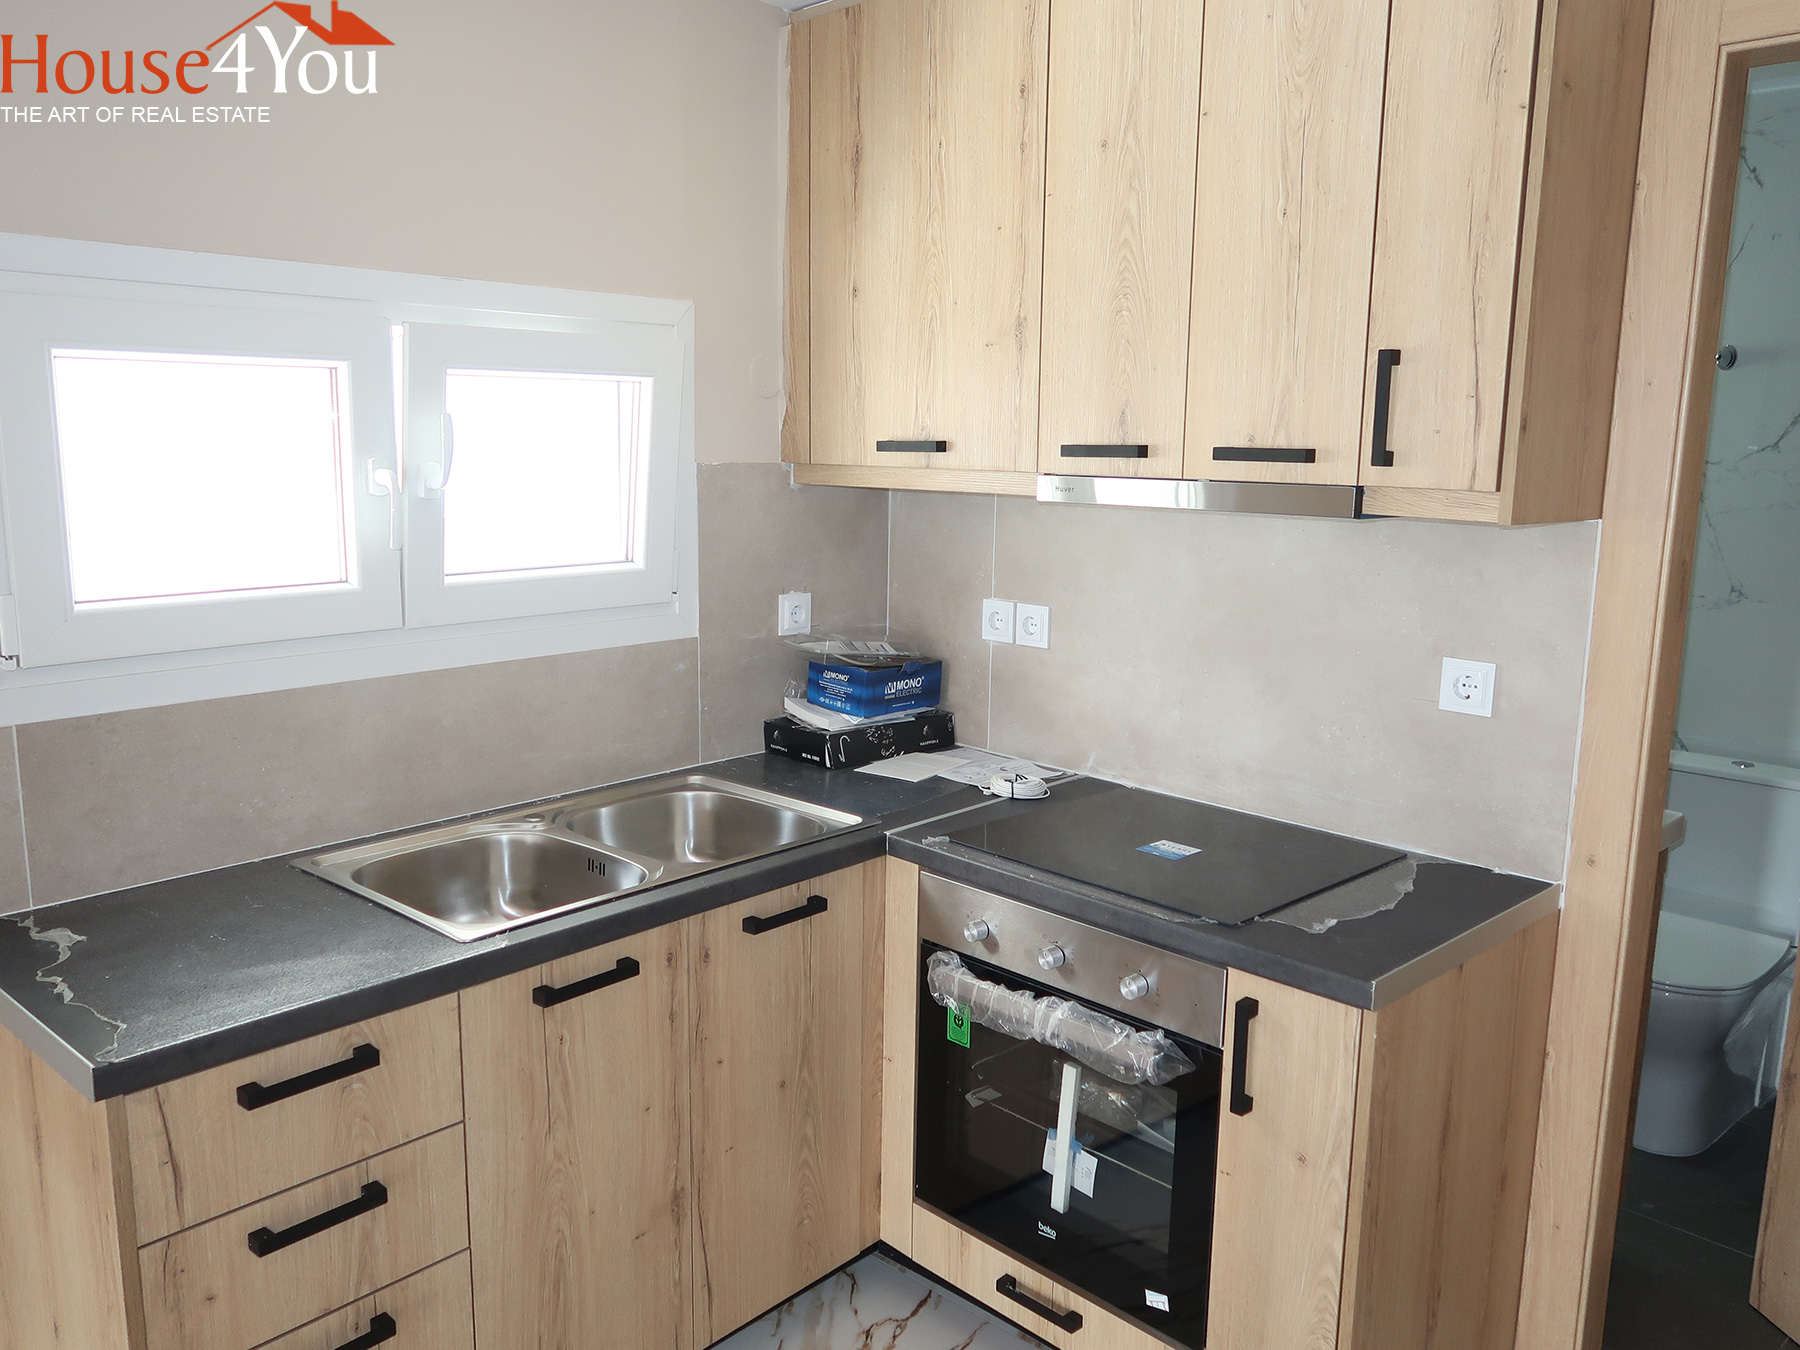 For rent a new 49sqm ground floor apartment. built in 2021 in Kaloutsiani Ioannina